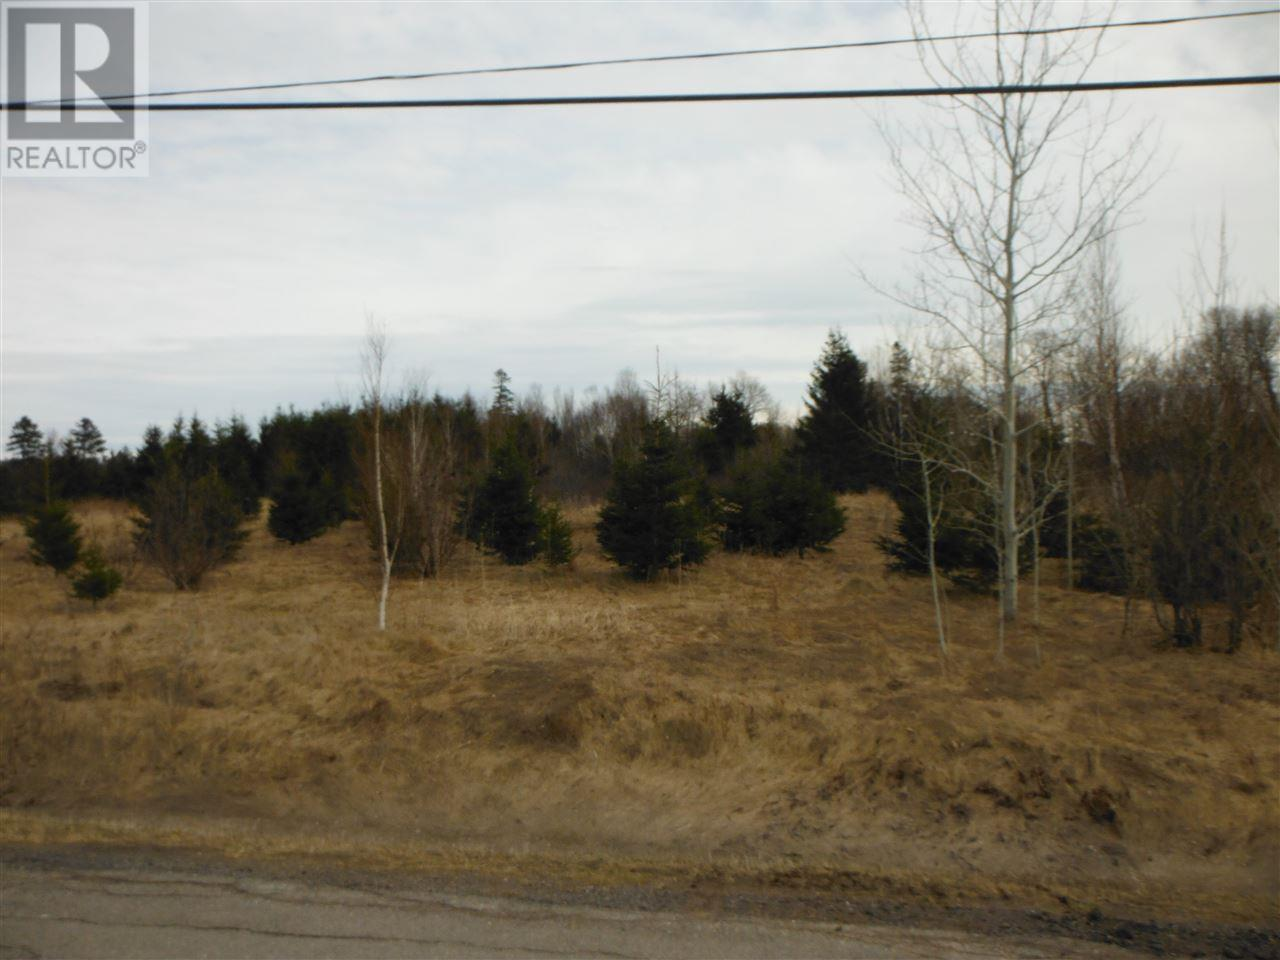 Lot 1-16 Royalty Junction Road, Charlottetown, Prince Edward Island  C1E 1Z2 - Photo 8 - 202006111